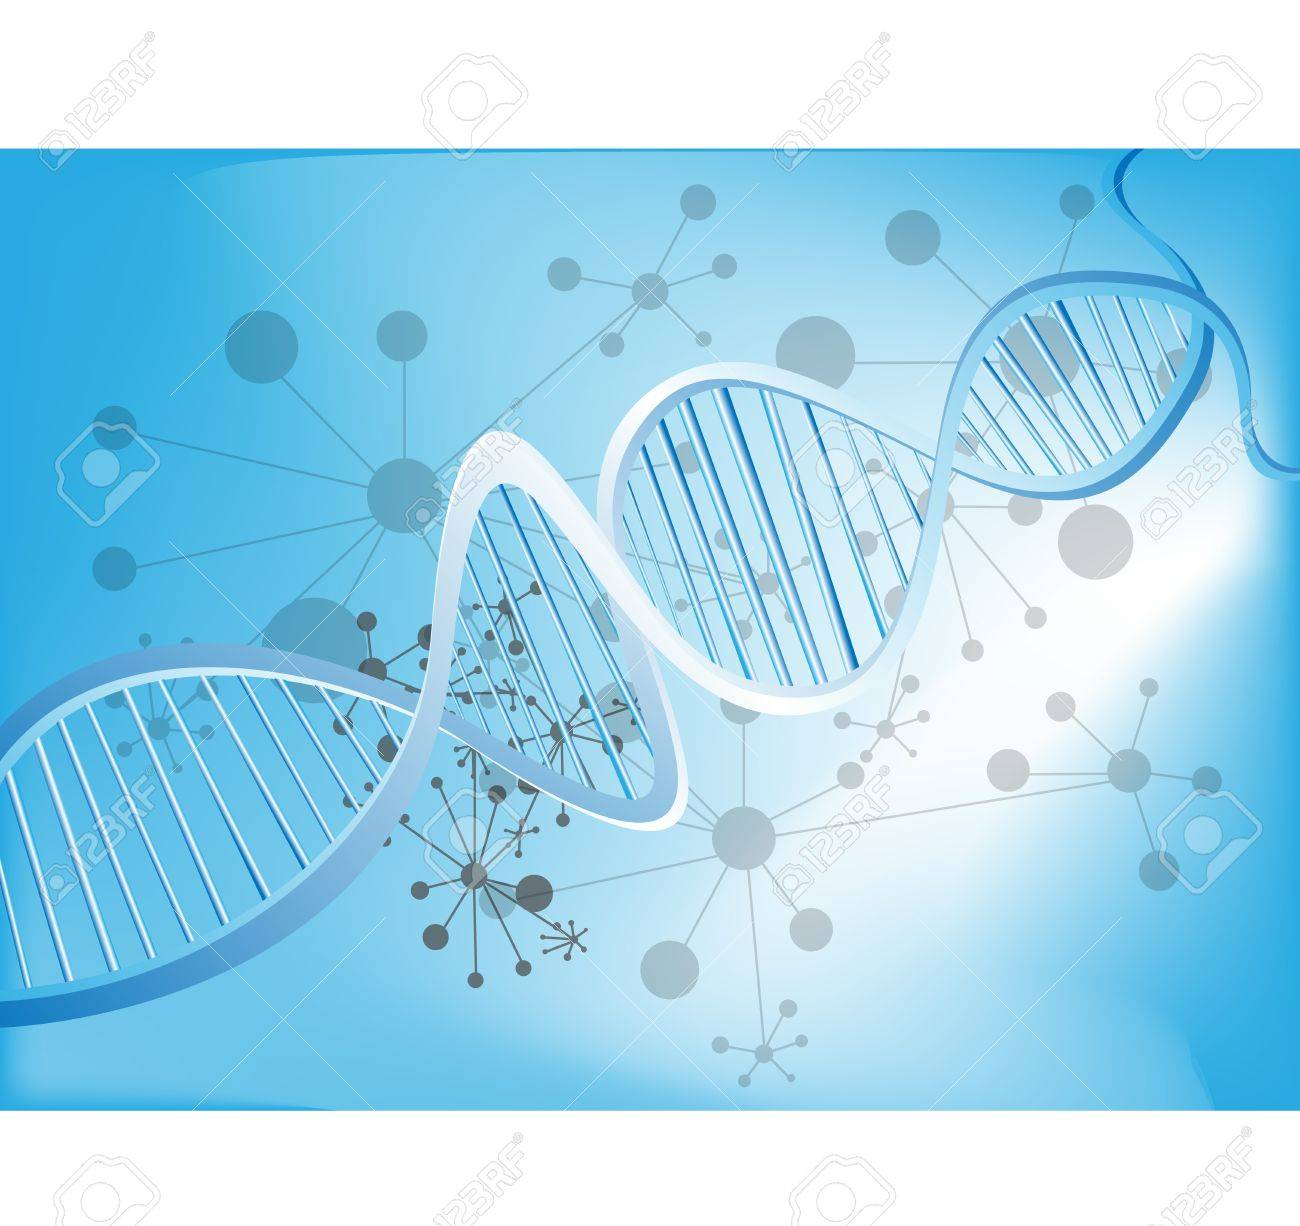 Abstract medical background with colorful DNA Stock Vector - 15959884